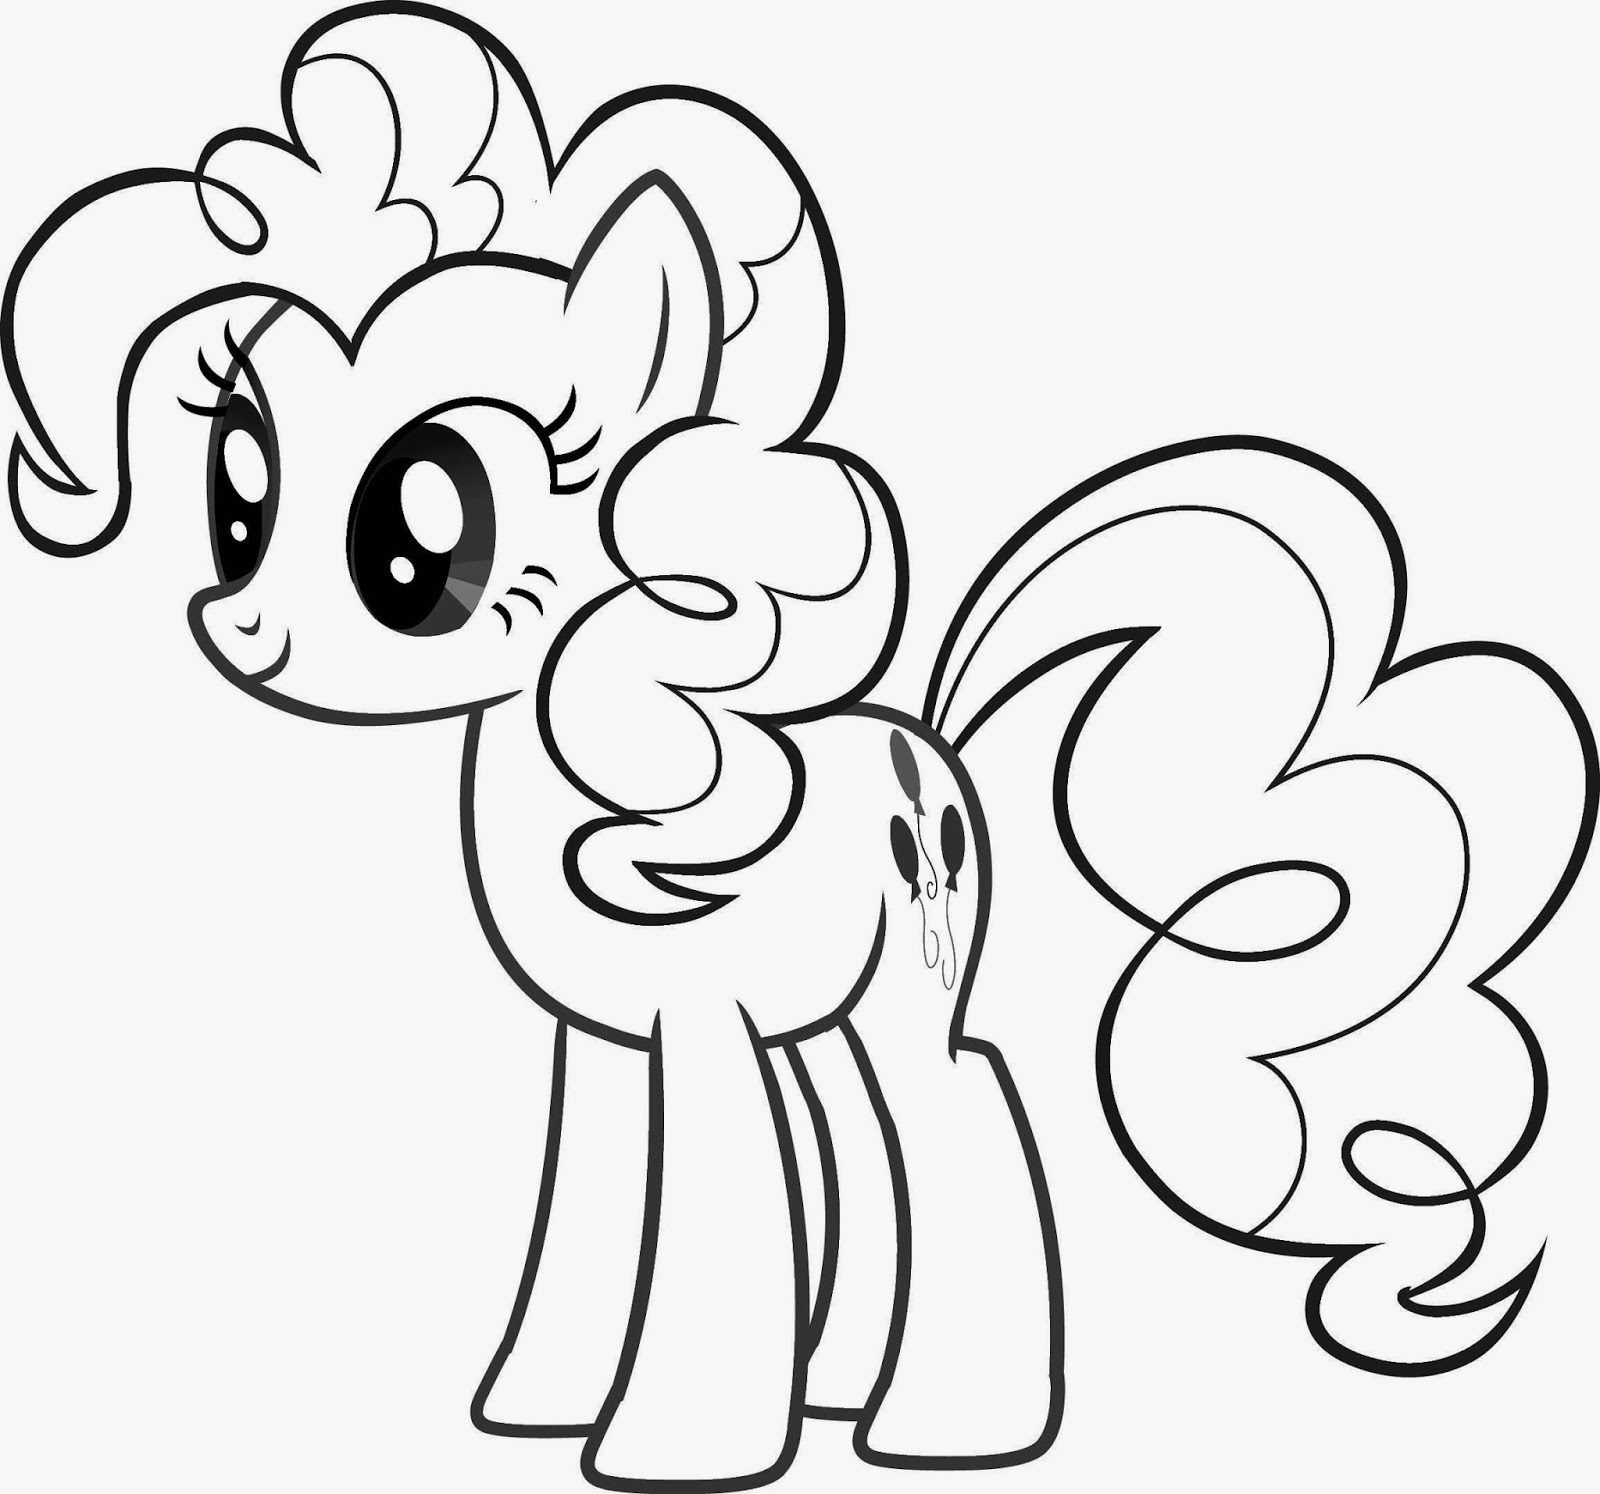 unicorn print out unicorn coloring pages to download and print for free print unicorn out